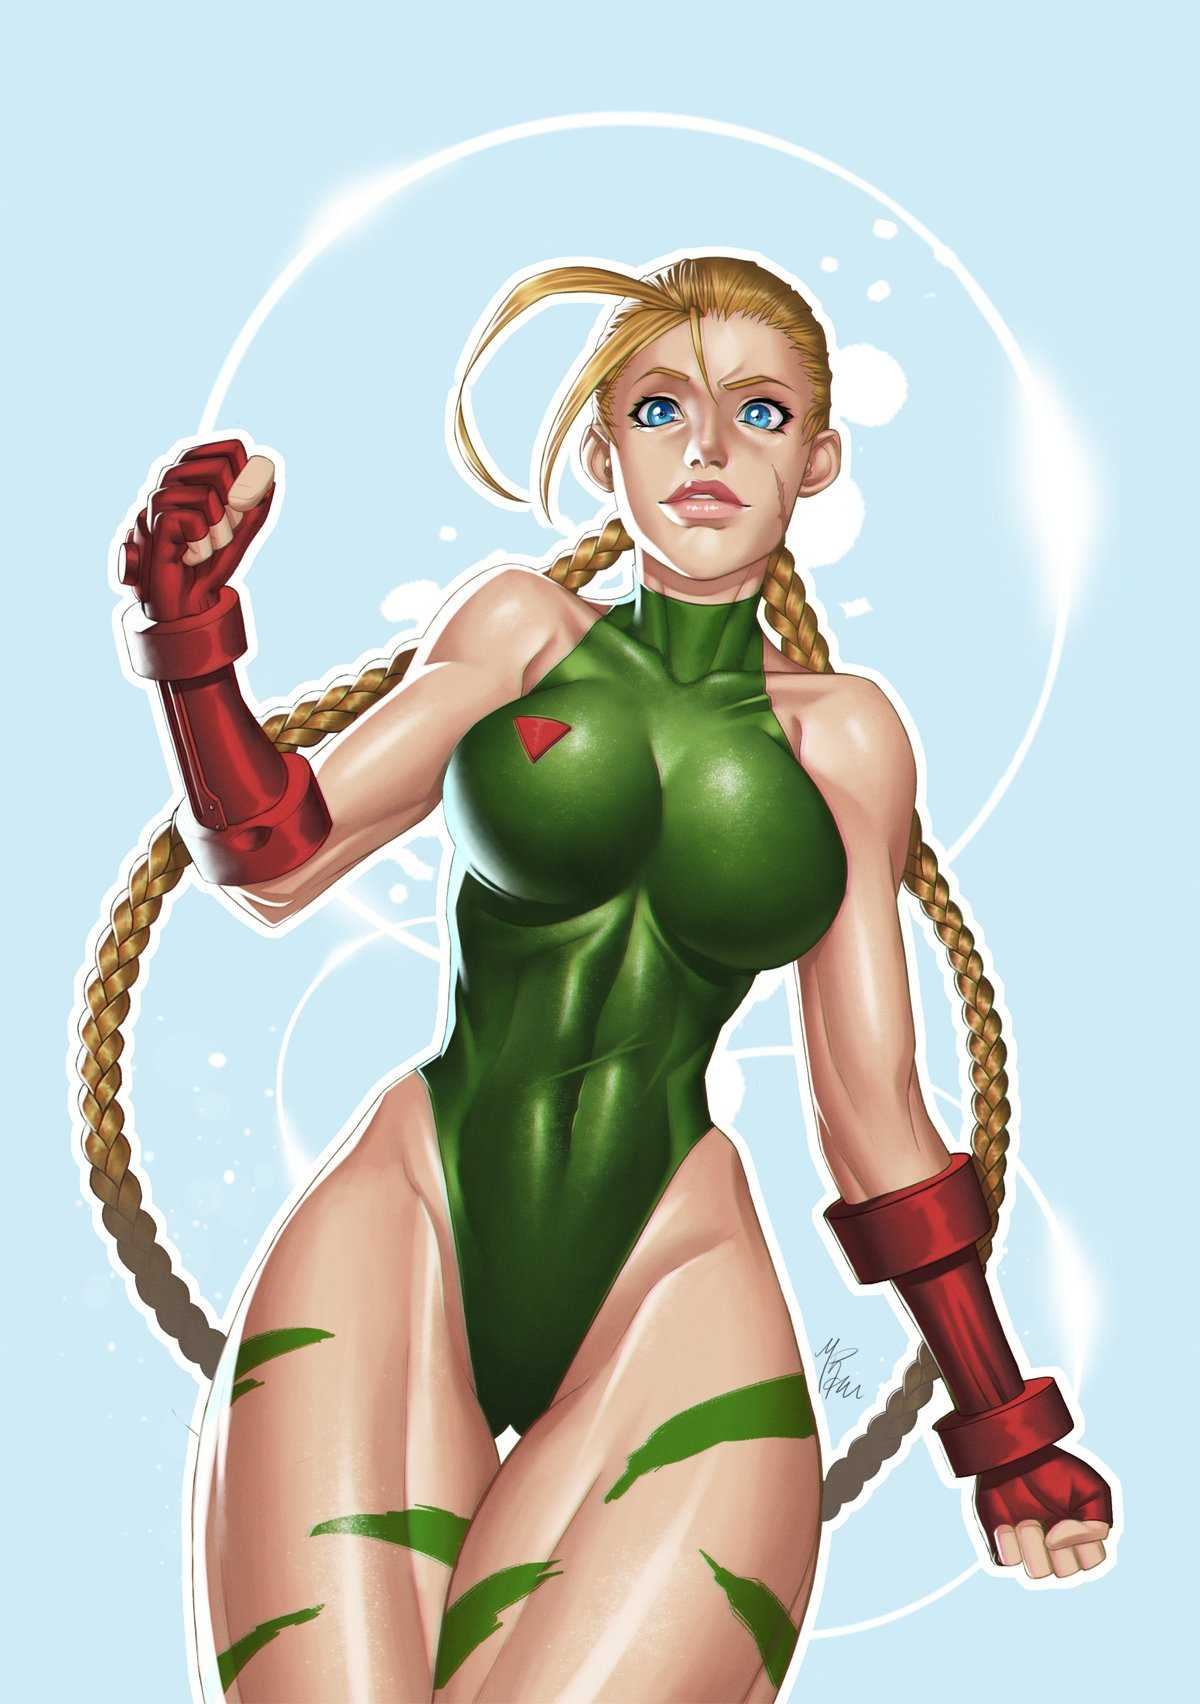 Cammy White - Street Fighter